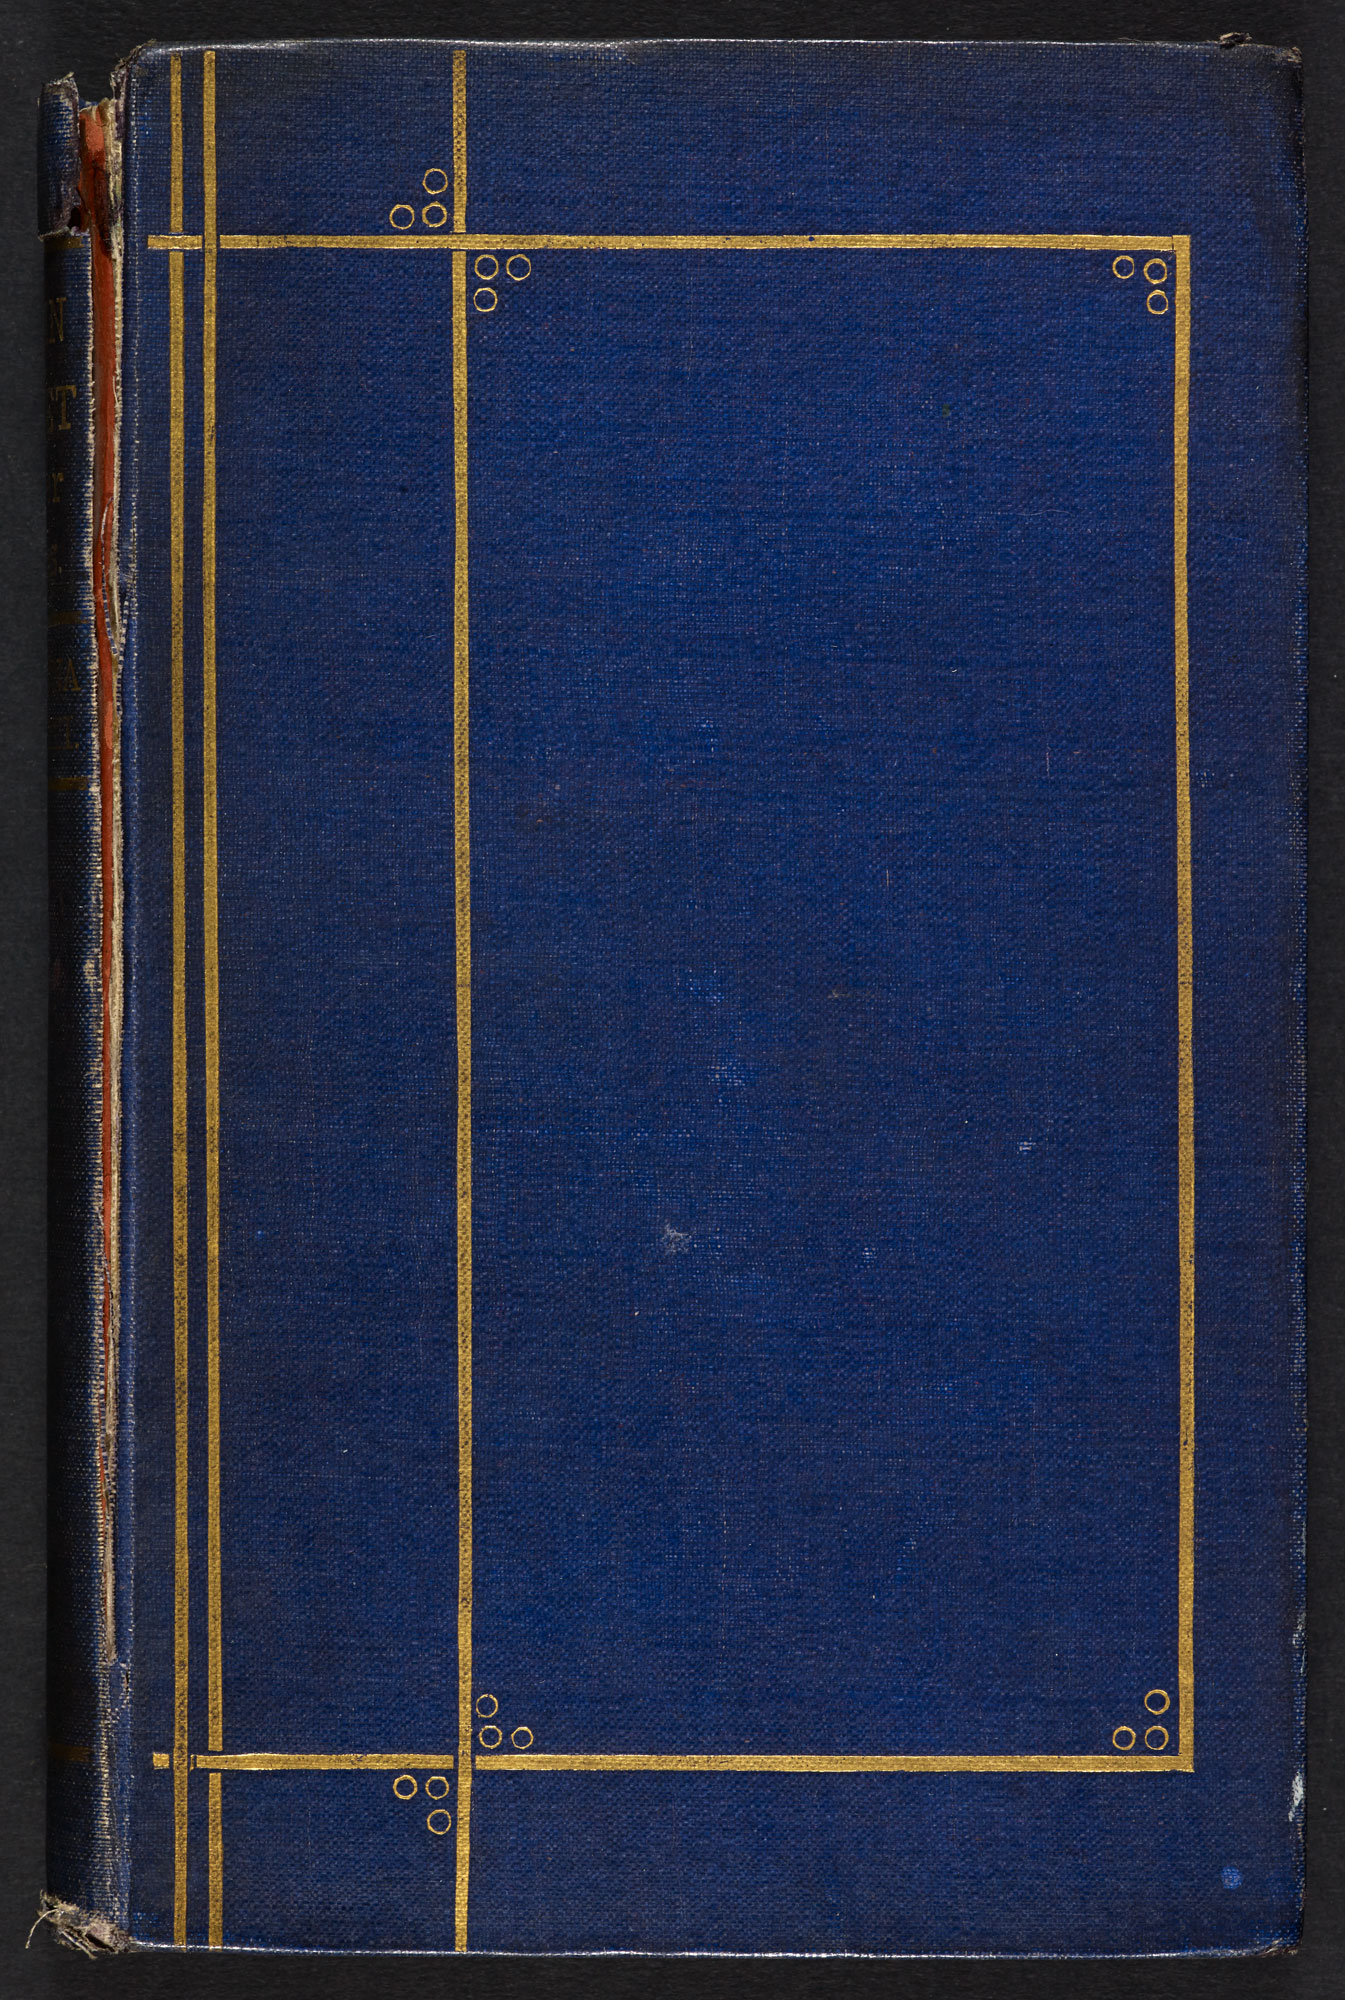 Second edition of Goblin Market by Christina Rossetti, with original covers [page: front cover]